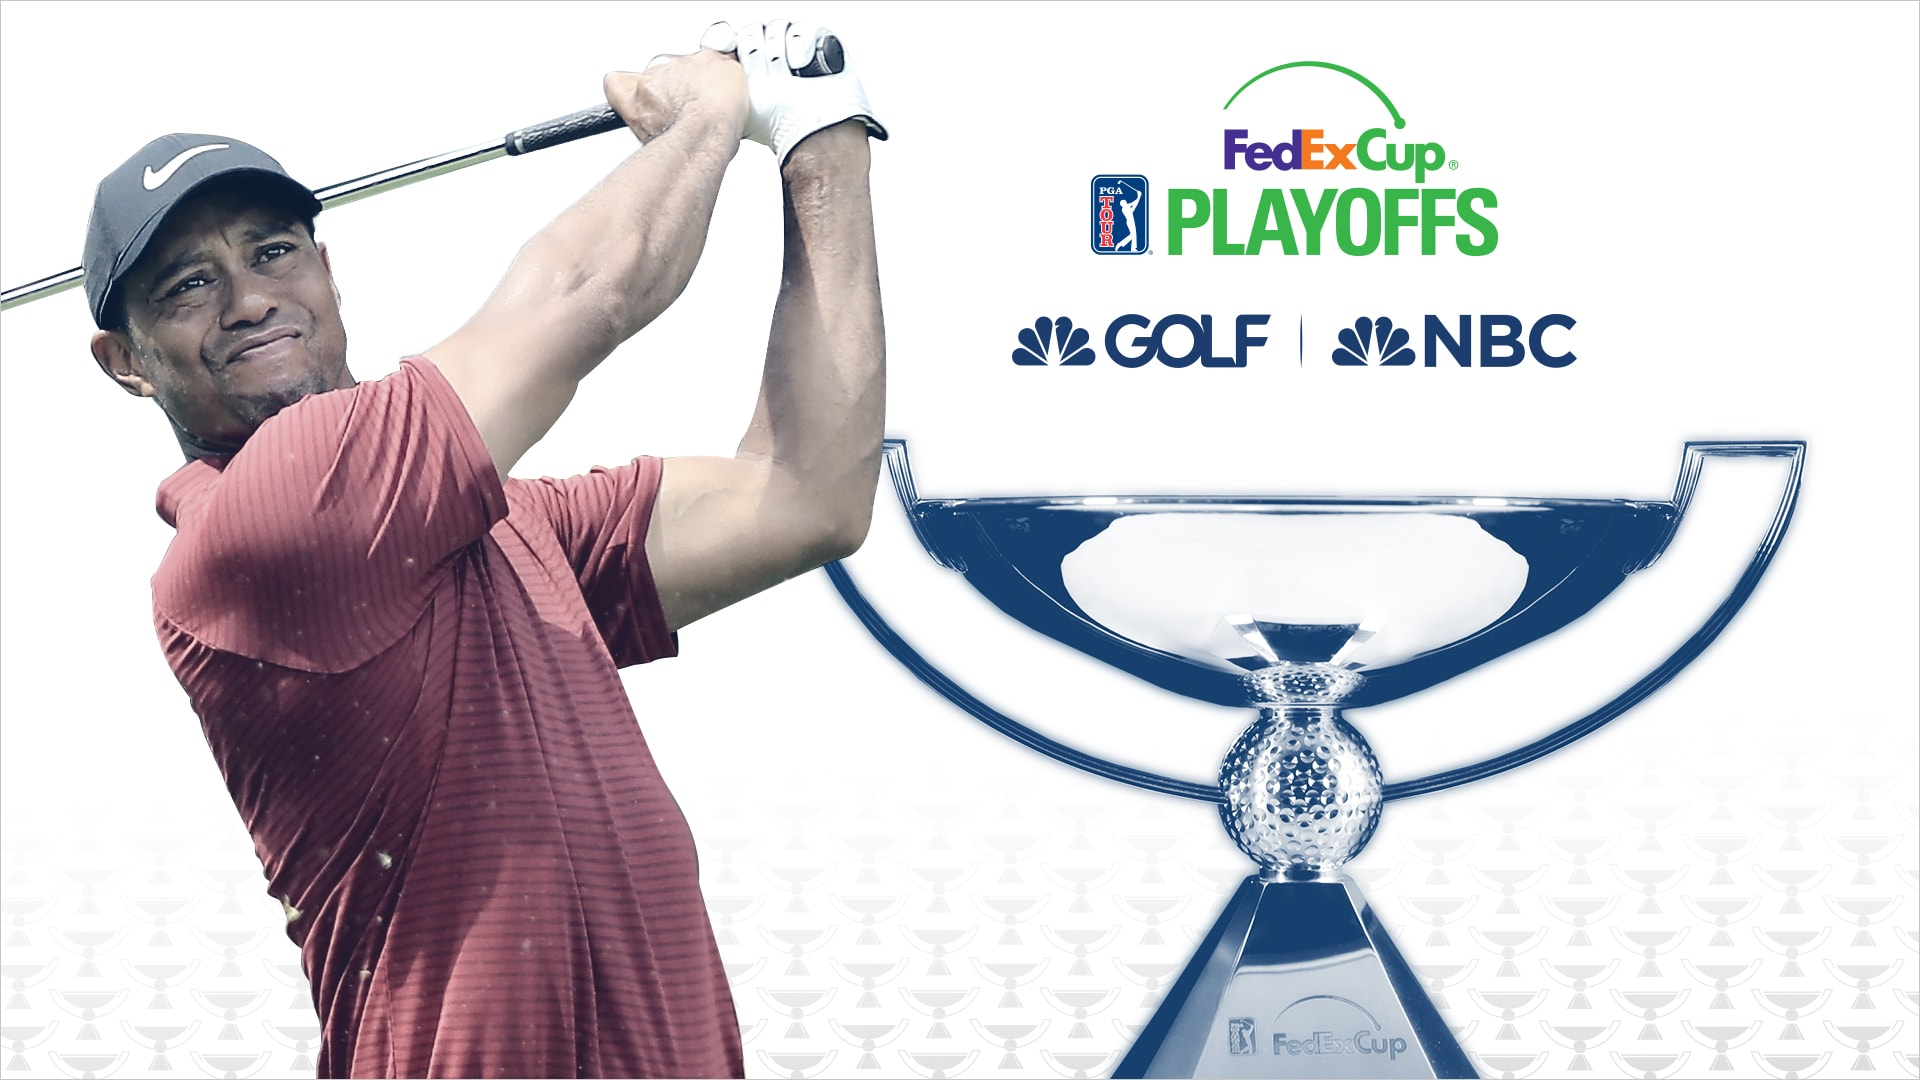 FedExCup Playoffs 2018 TV Schedule